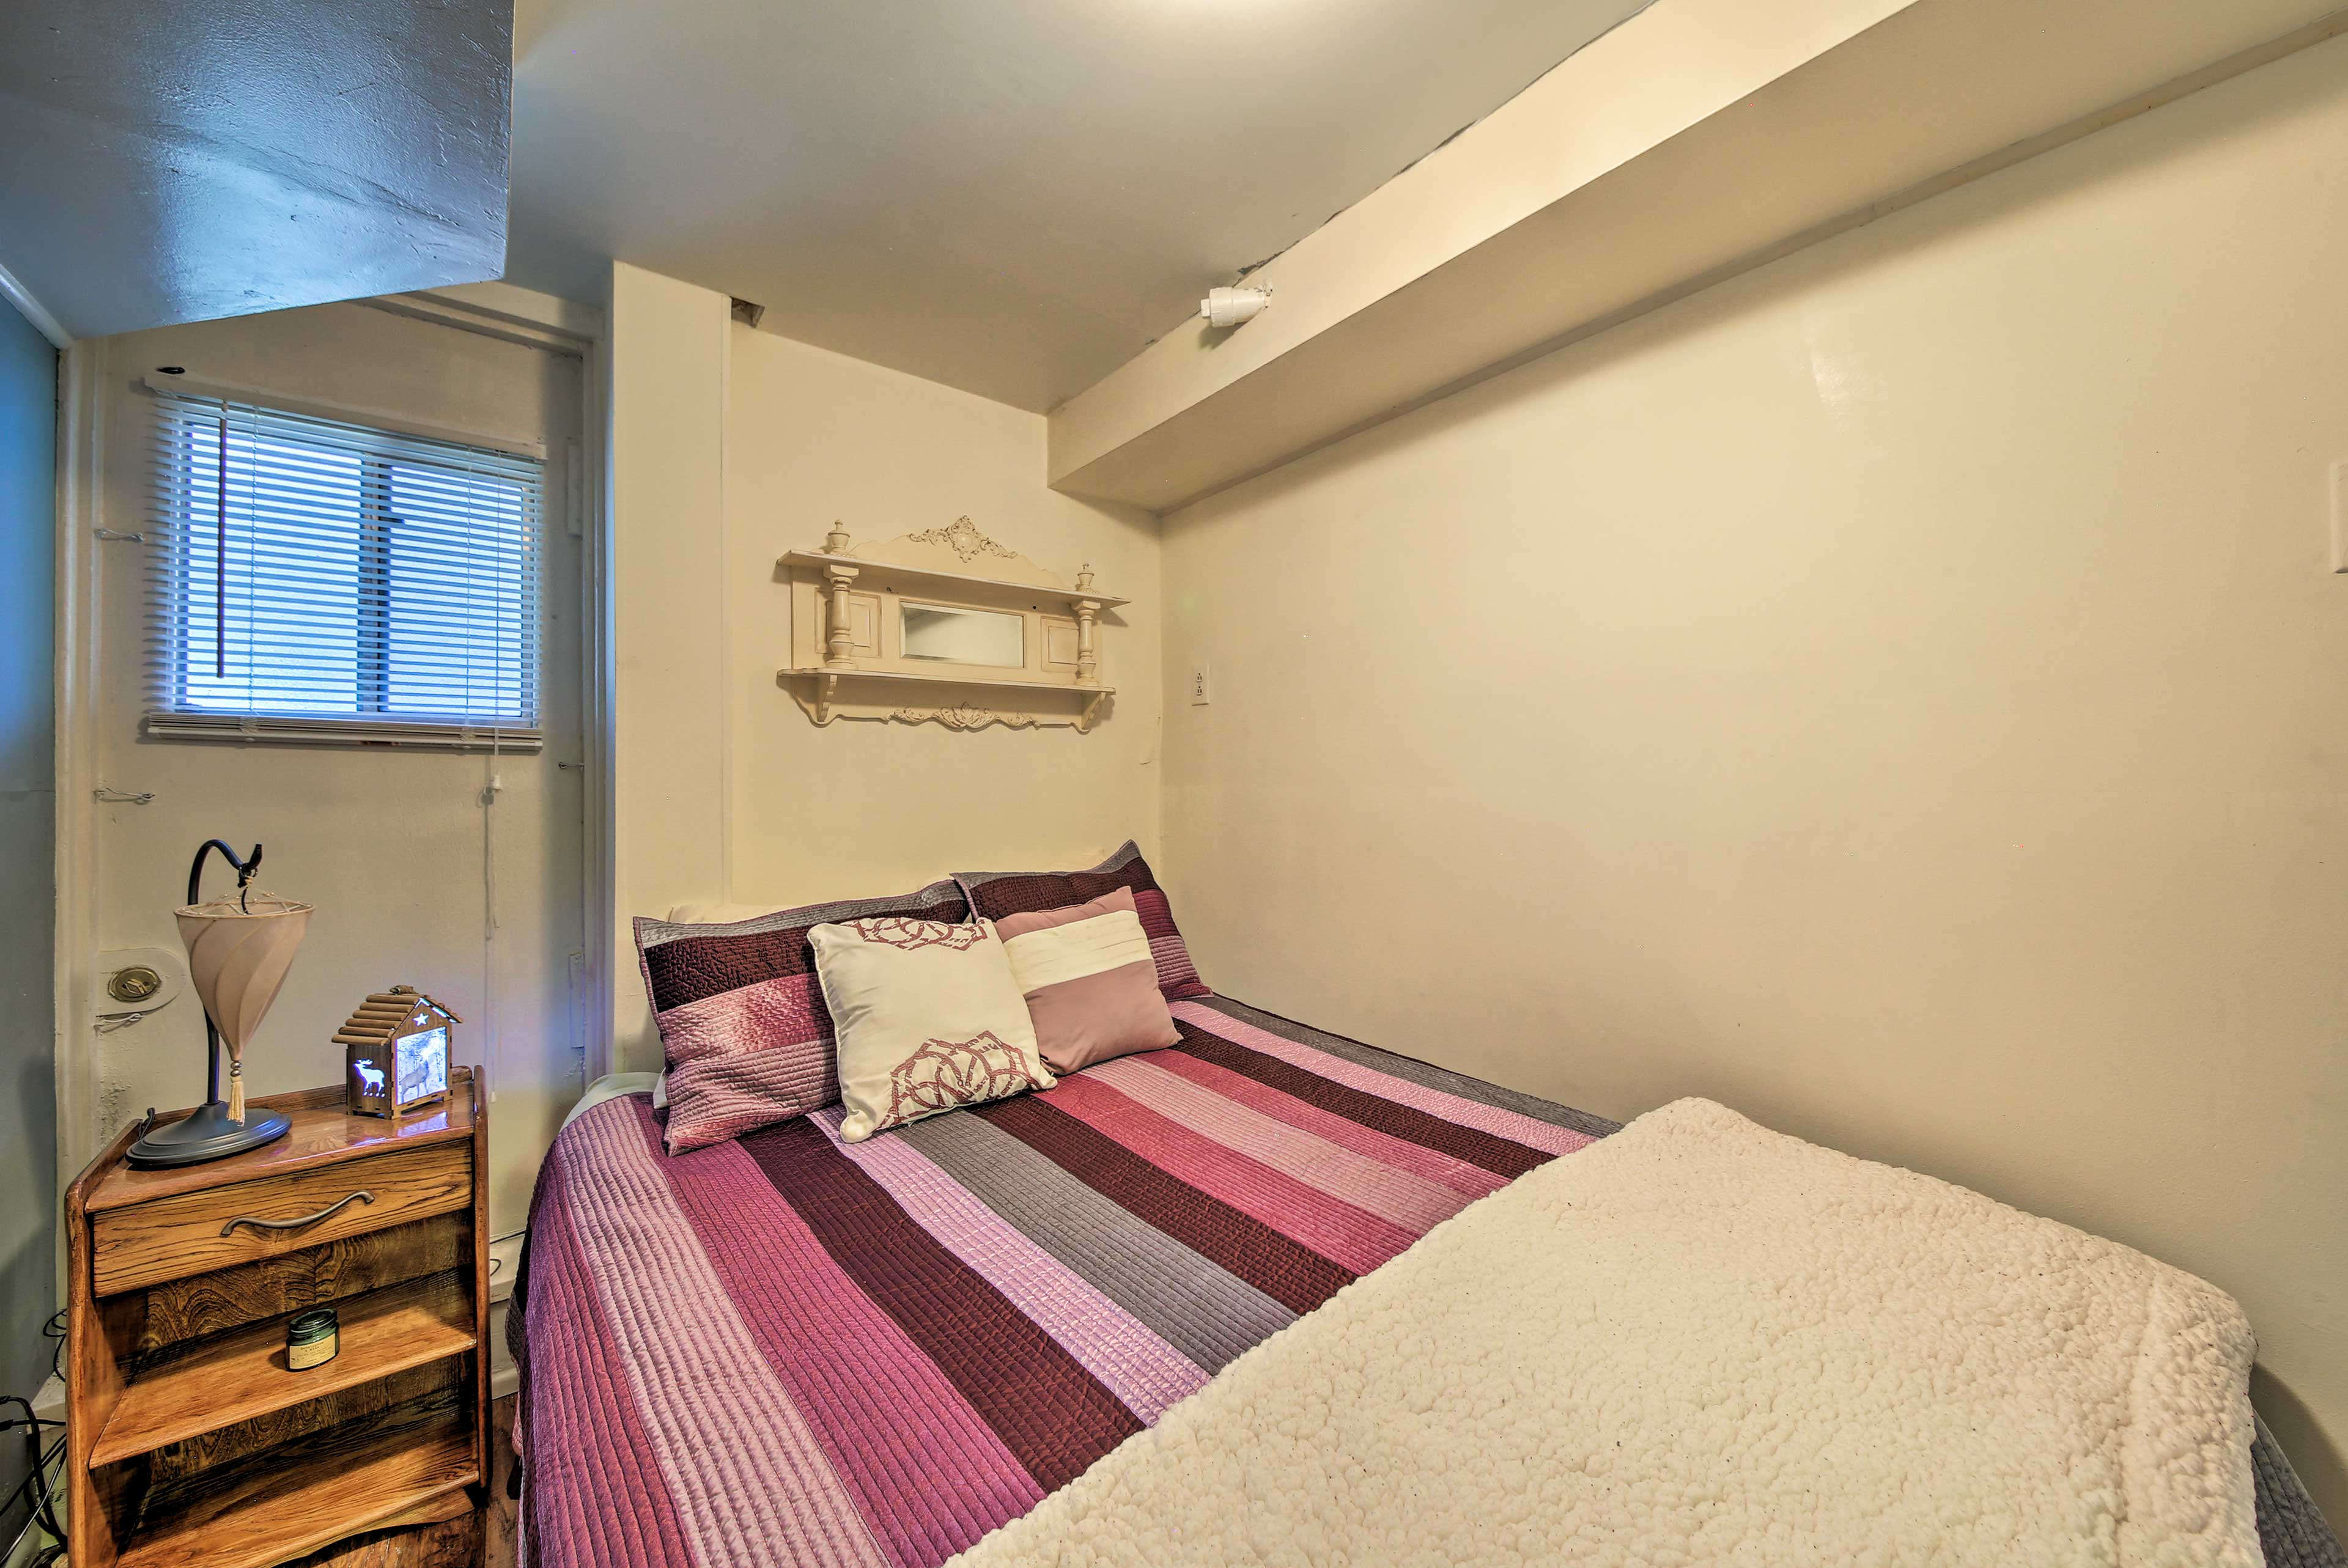 Sleep is sure to come easy in any of the 3 bedrooms.